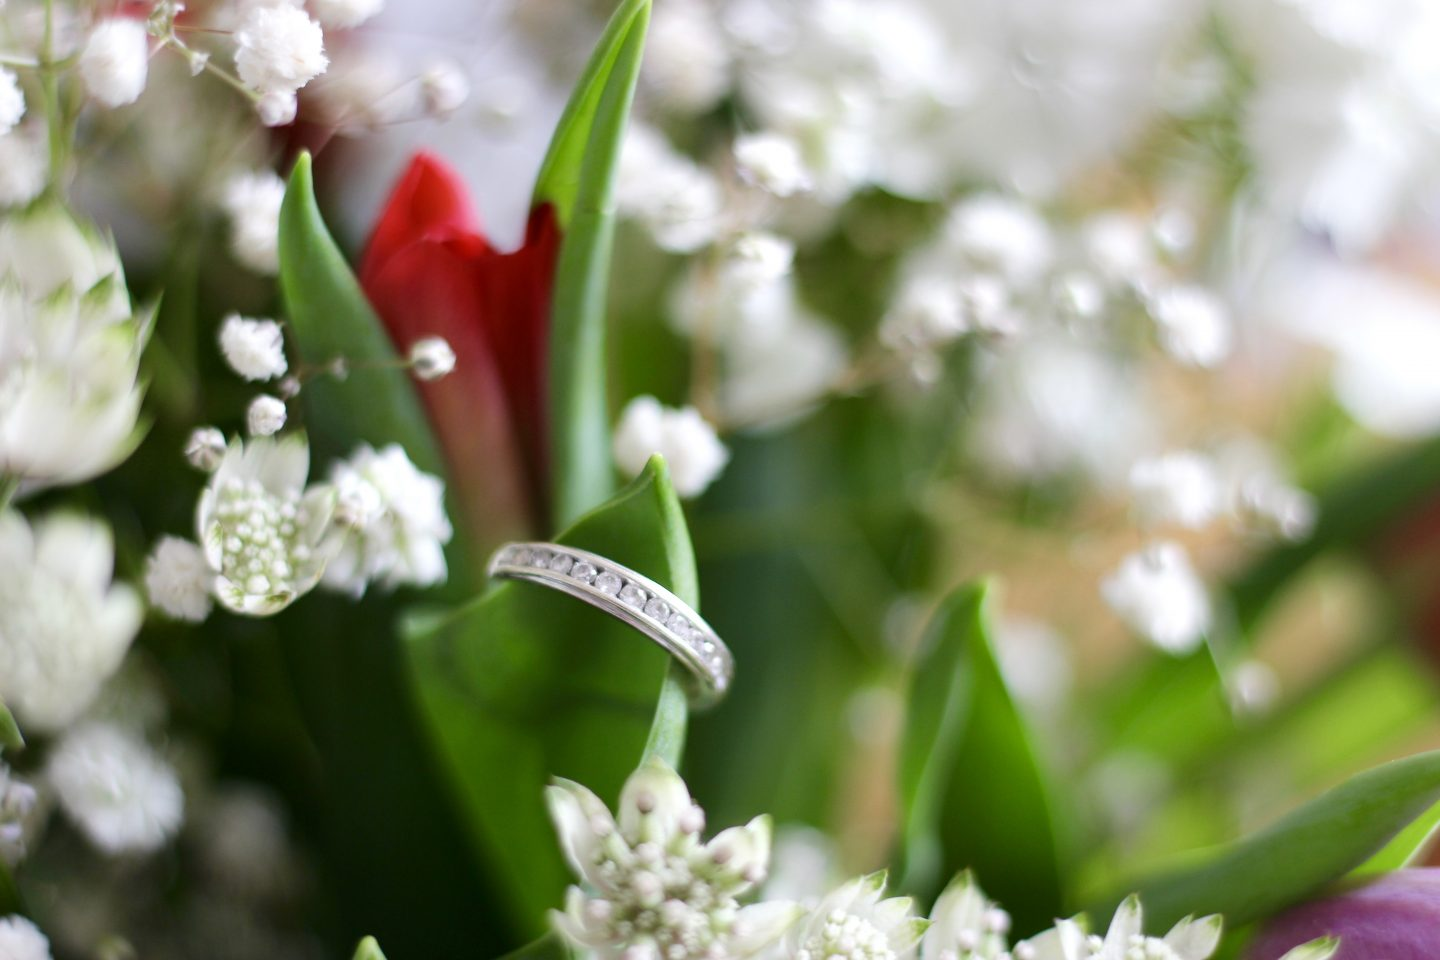 HOW TO CHOOSE YOUR PERFECT WEDDING RING